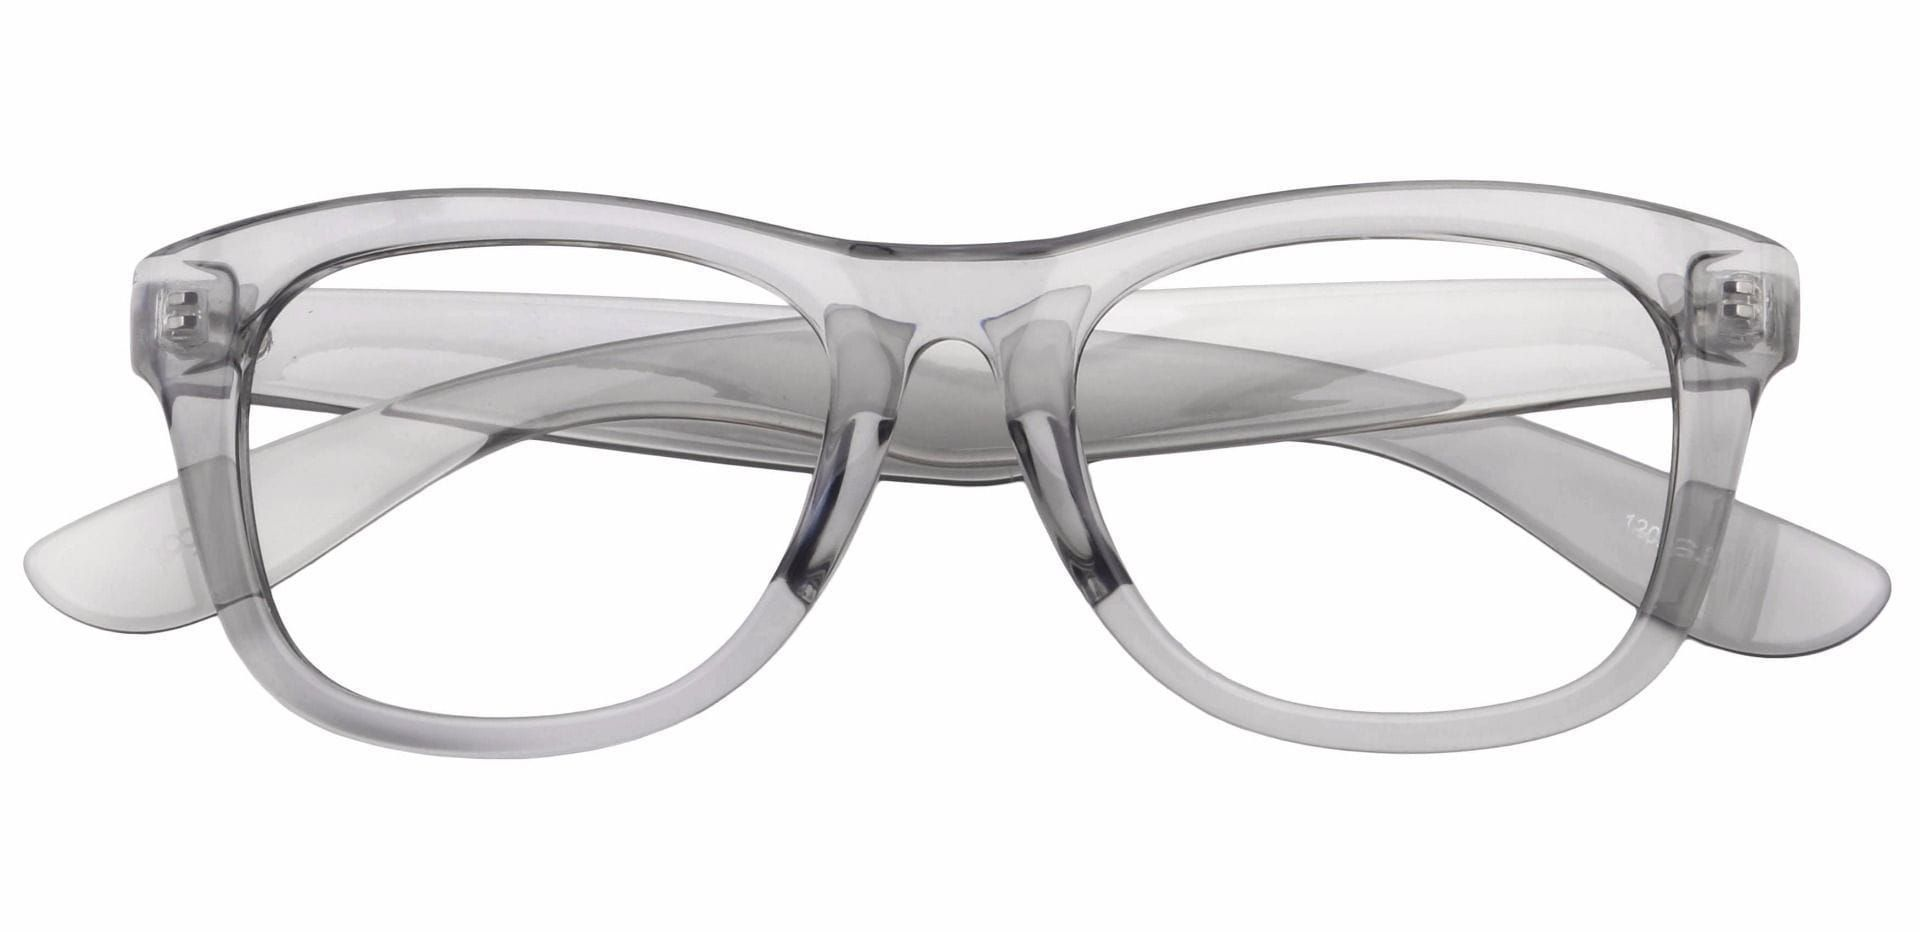 Tyre Square Prescription Glasses - Gray